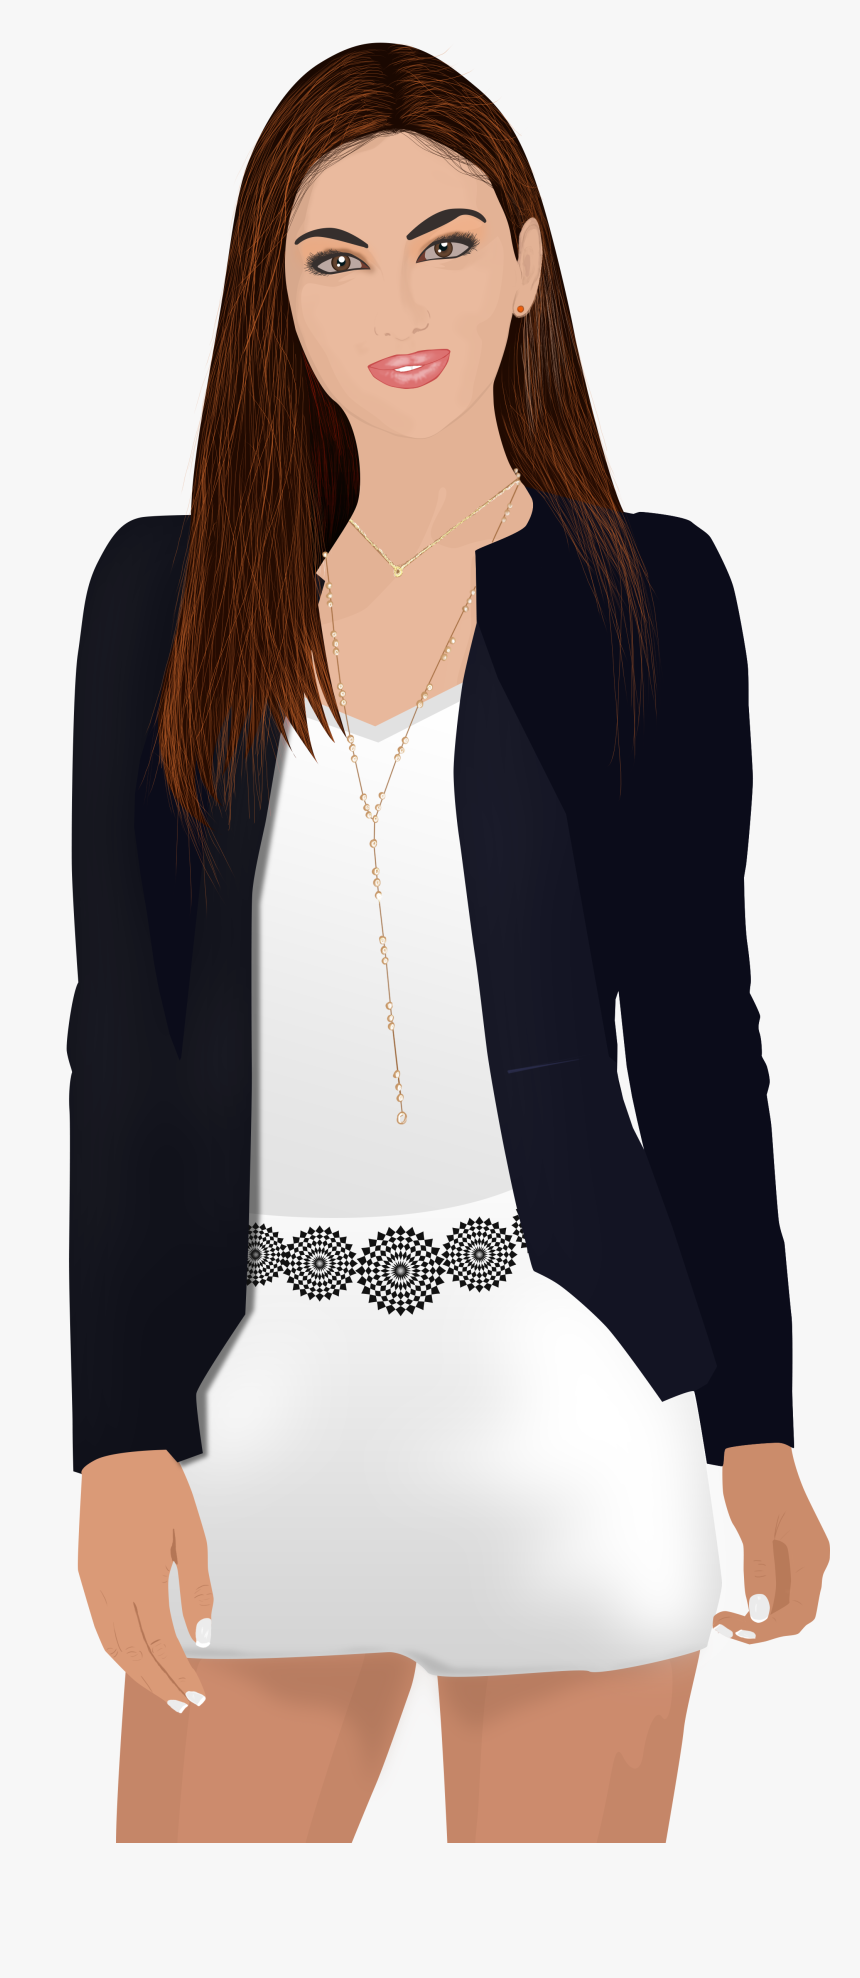 Office Woman Transparent Background, HD Png Download, Free Download